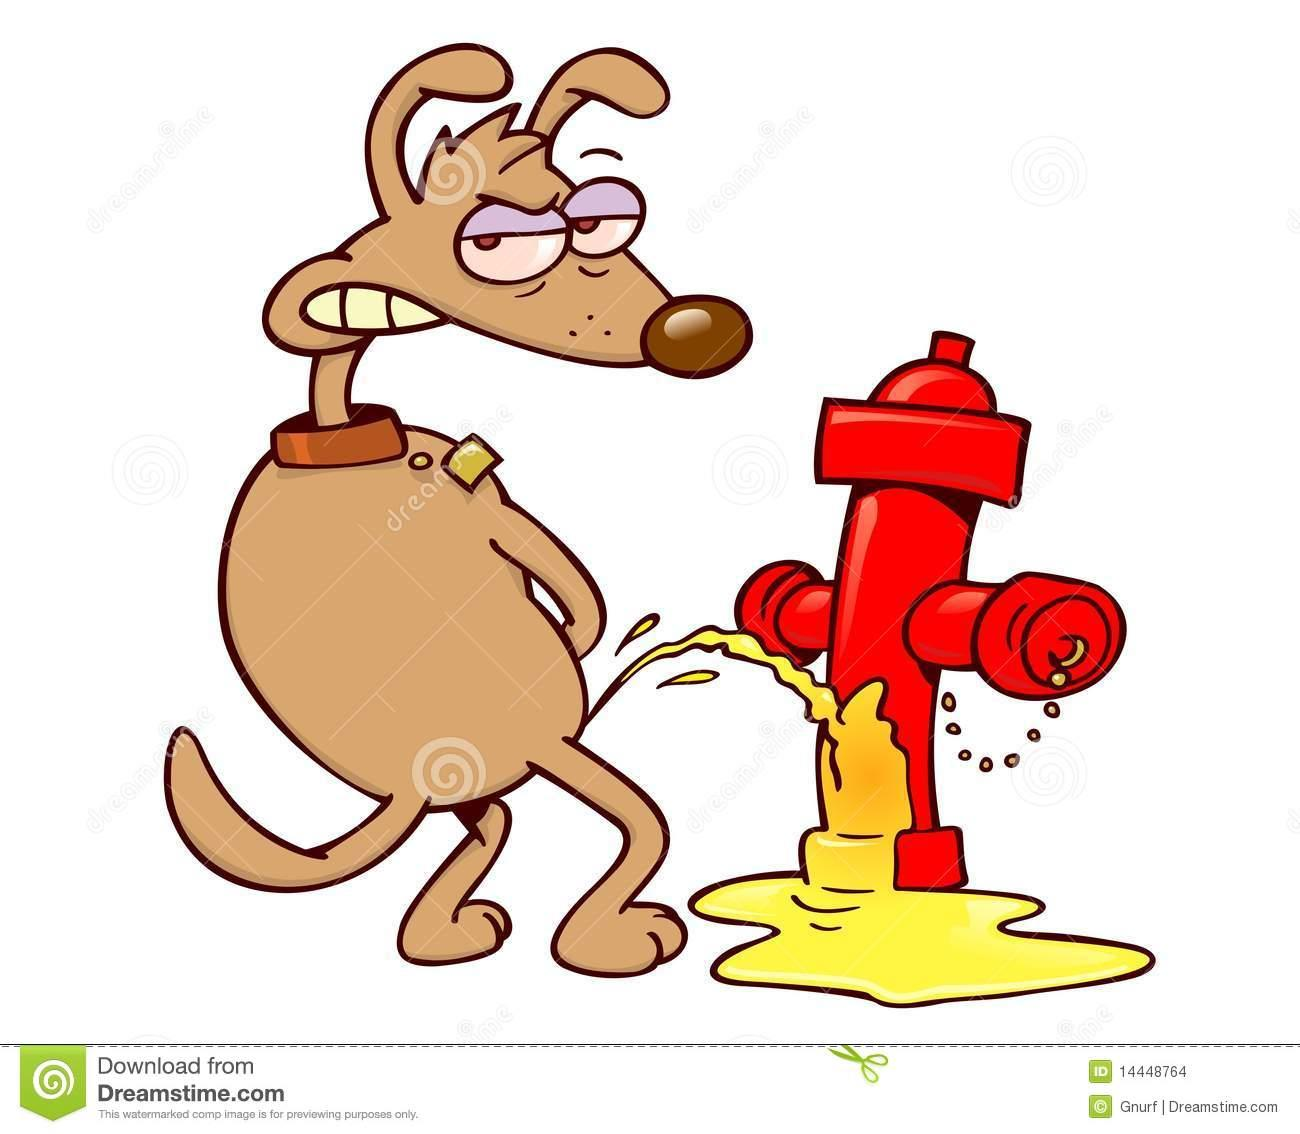 http://thumbs.dreamstime.com/z/mad-dog-peeing-fire-hydrant-14448764.jpg